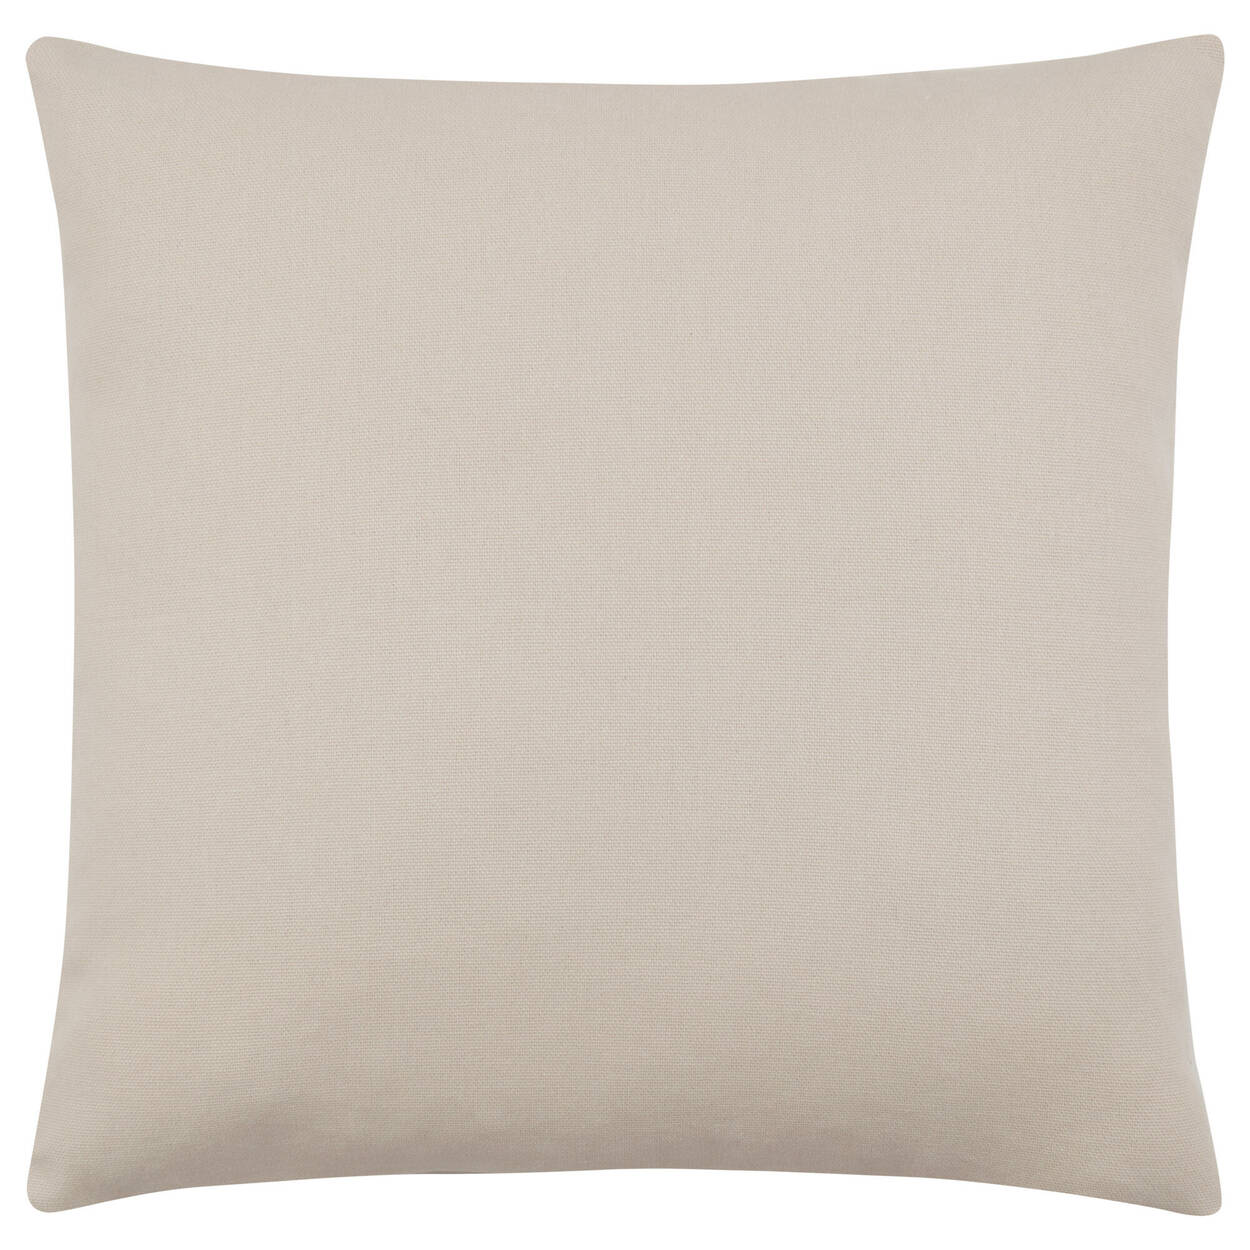 "Kerrie Pillow Cover 18"" x 18"""